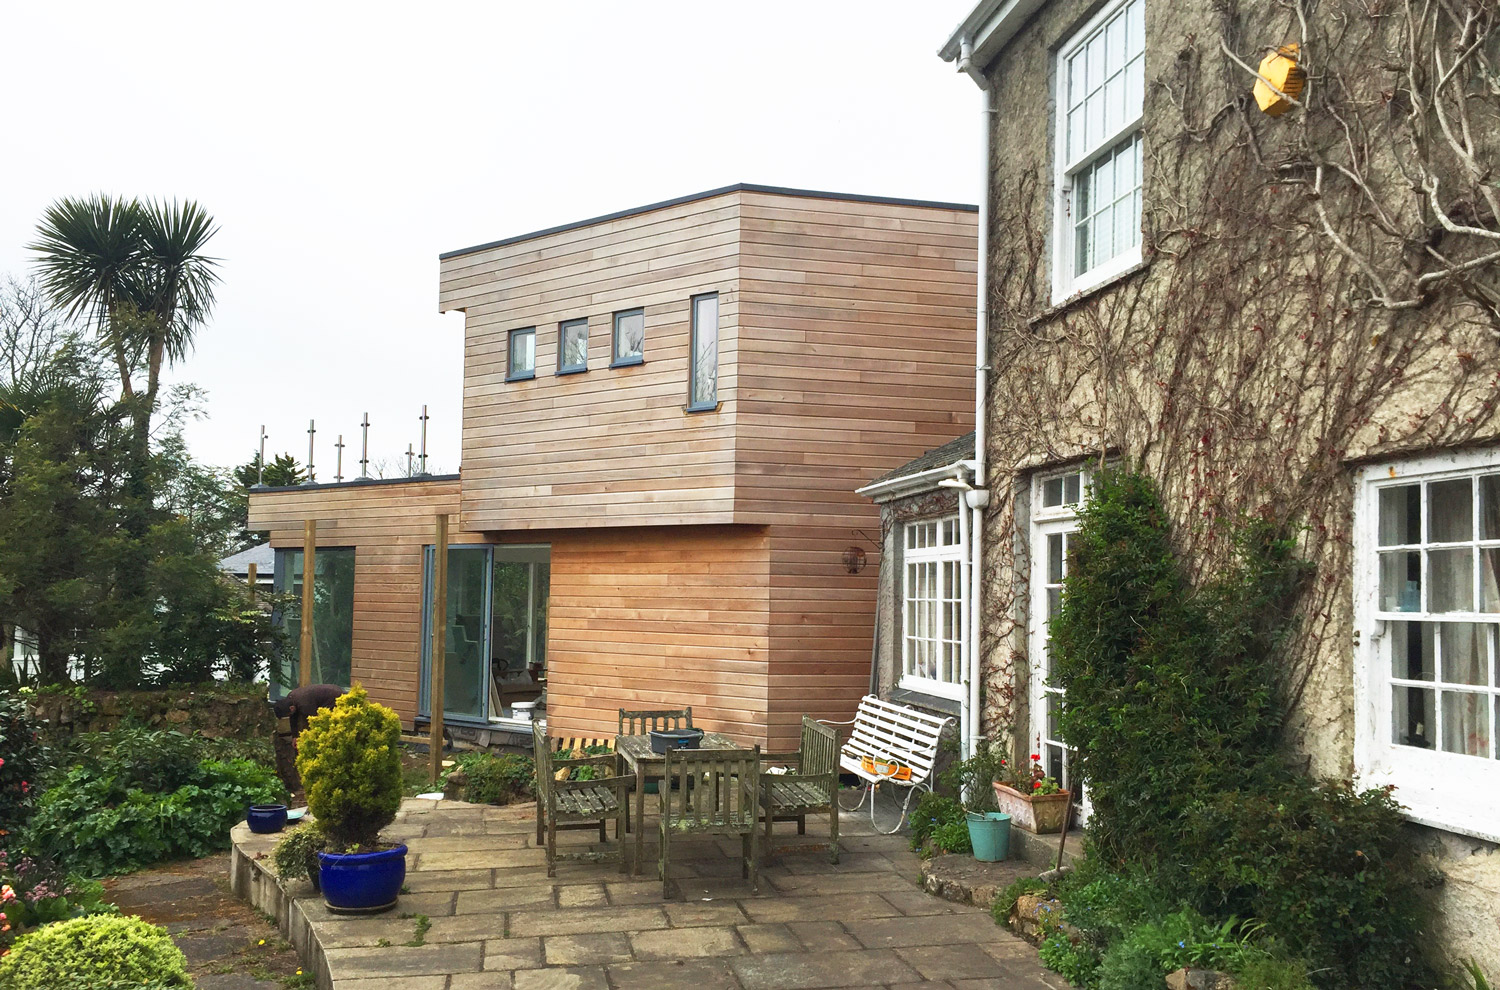 extention designed by architect in Cornwall